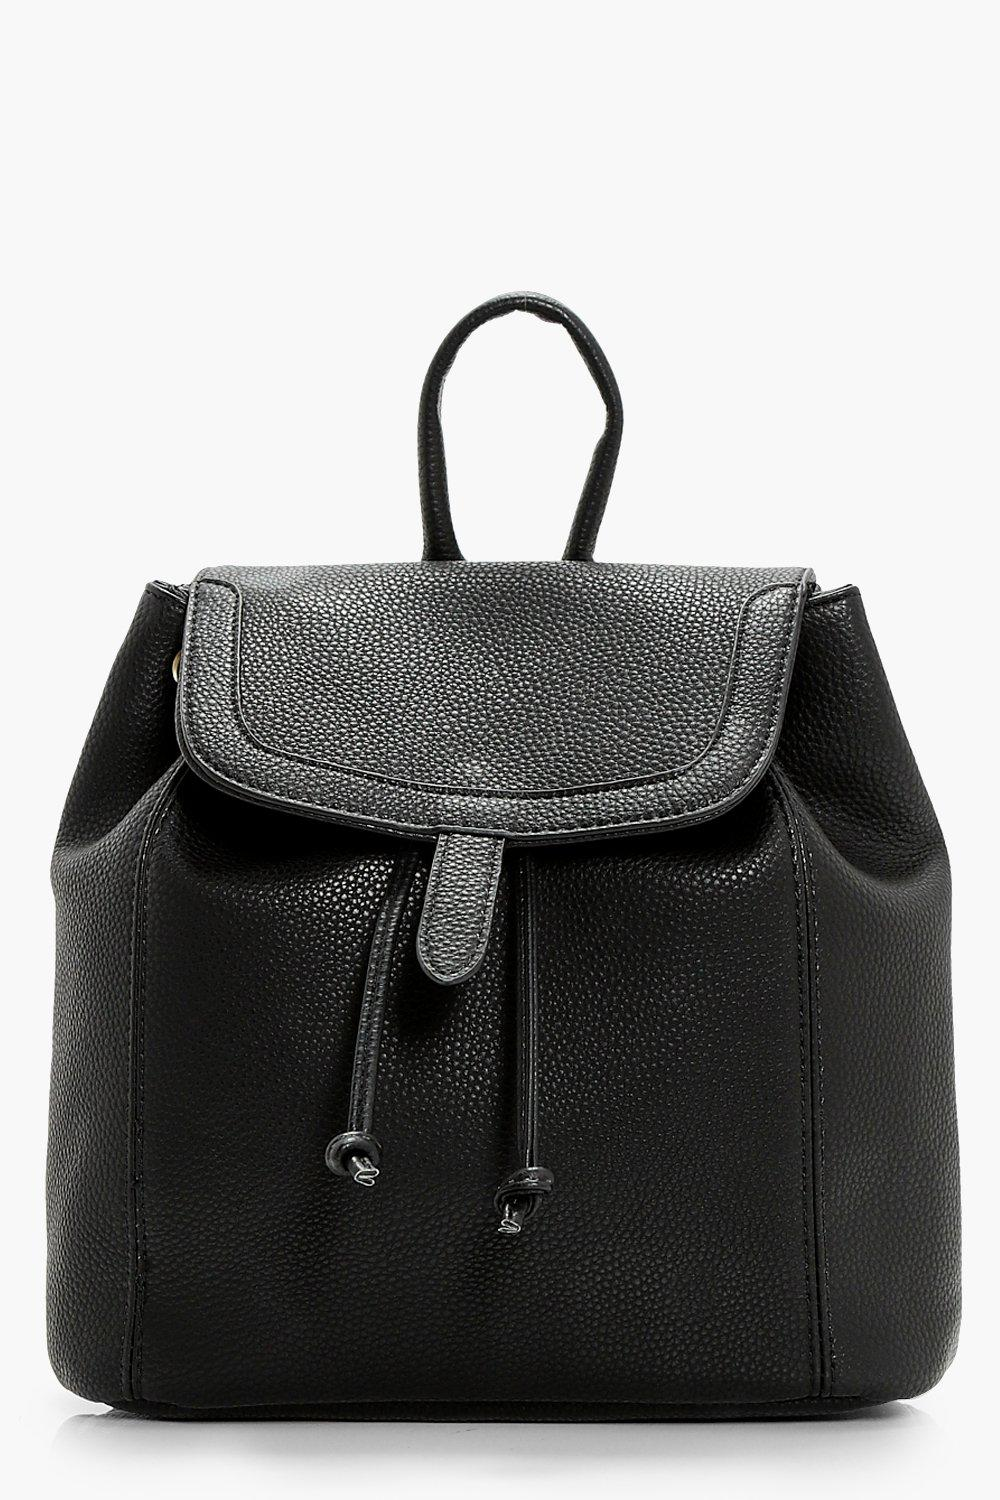 Entry Painted Edge Rucksack - black - Kerry Entry